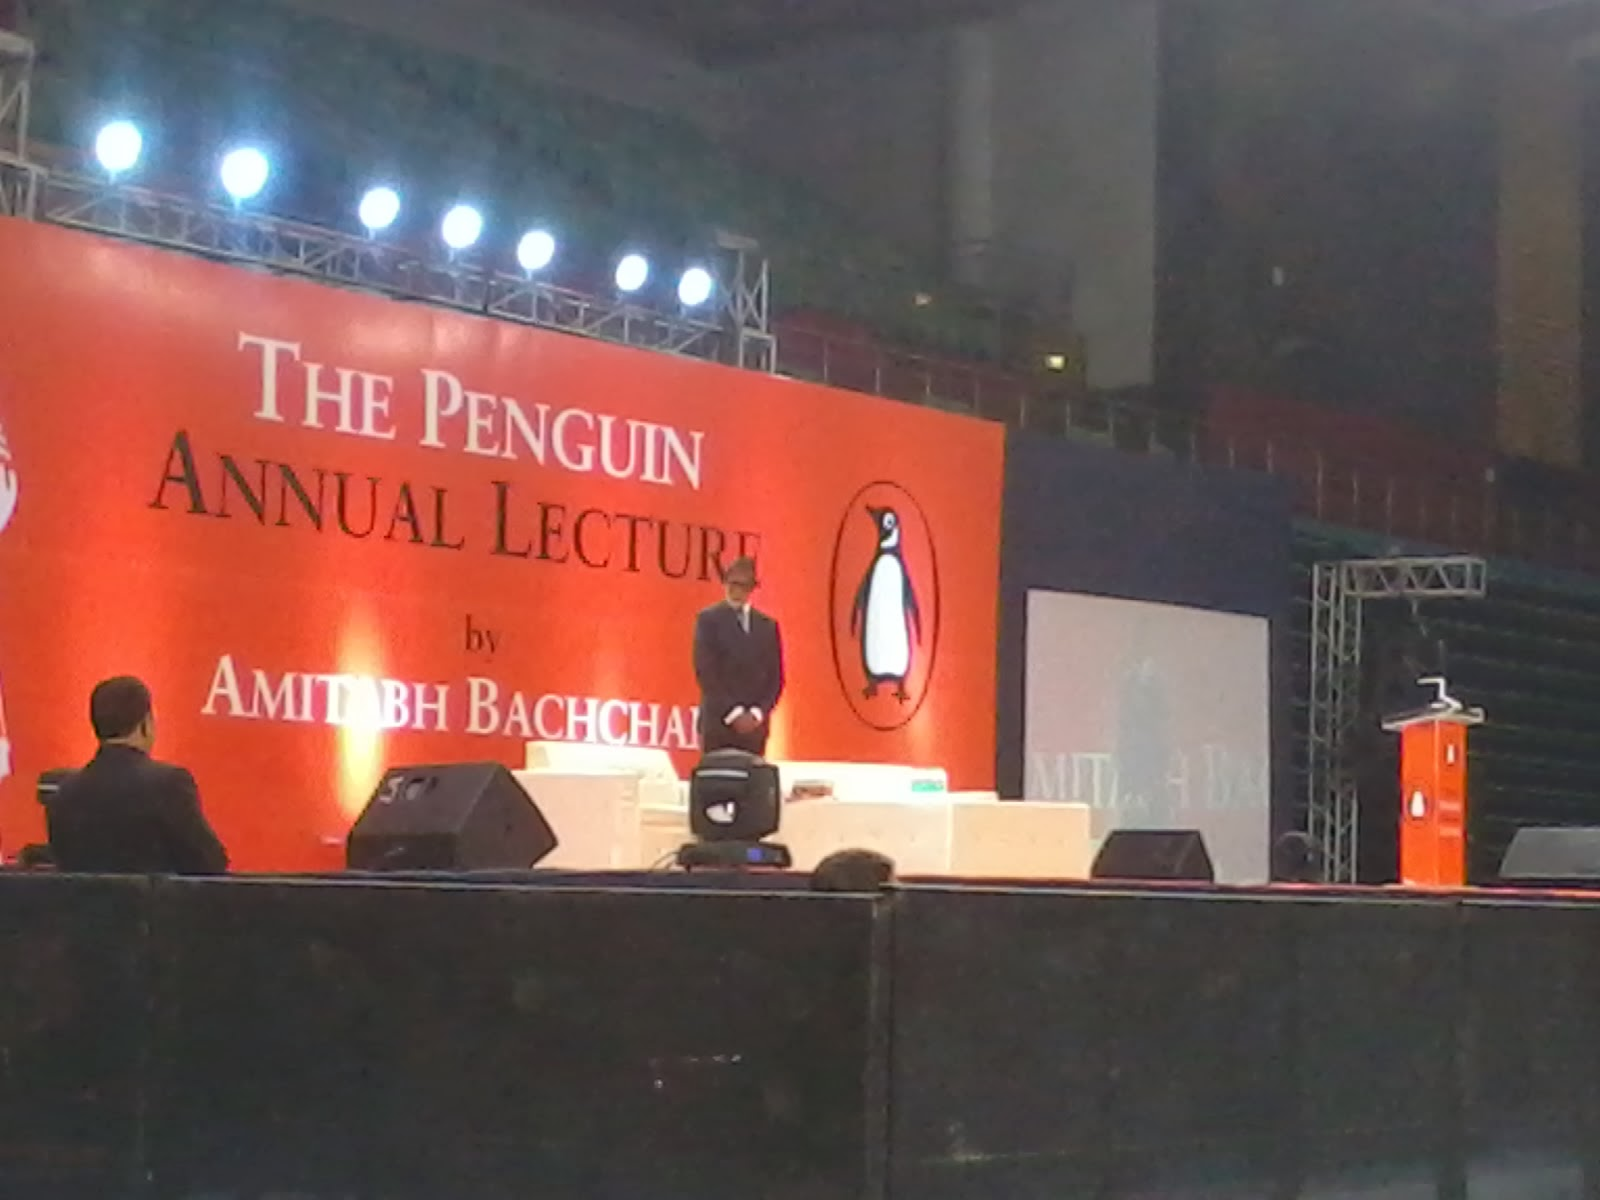 Penguin Annual Lecture By Amitabh Bachchan